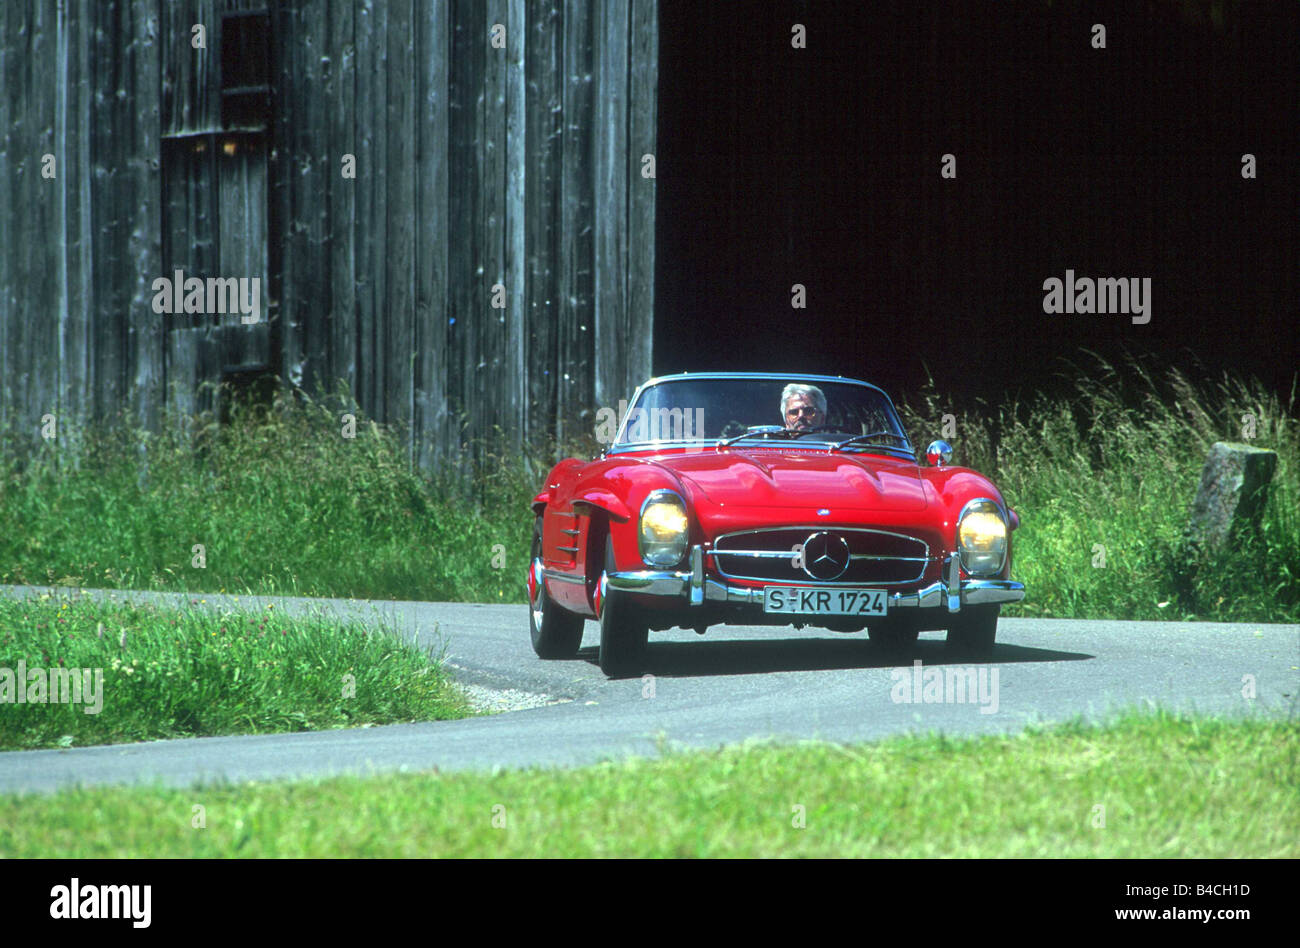 Car Mercedes 300 SL Roadster Convertible Model Year 1957 1963 Red Vintage Approx 1950s Sixties Open Top Driving Count